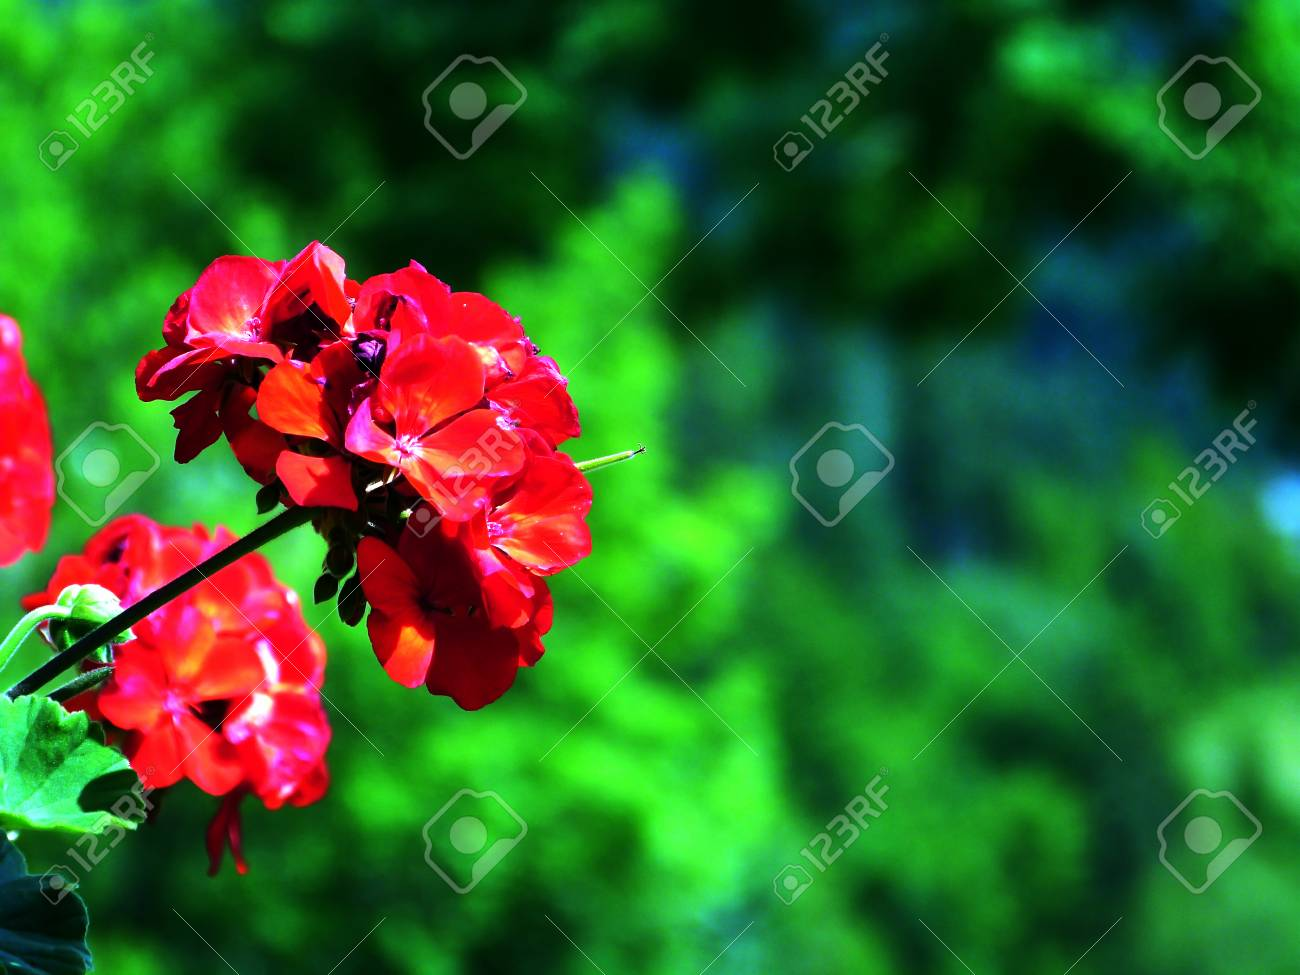 Red flower with mountain background - 86560636